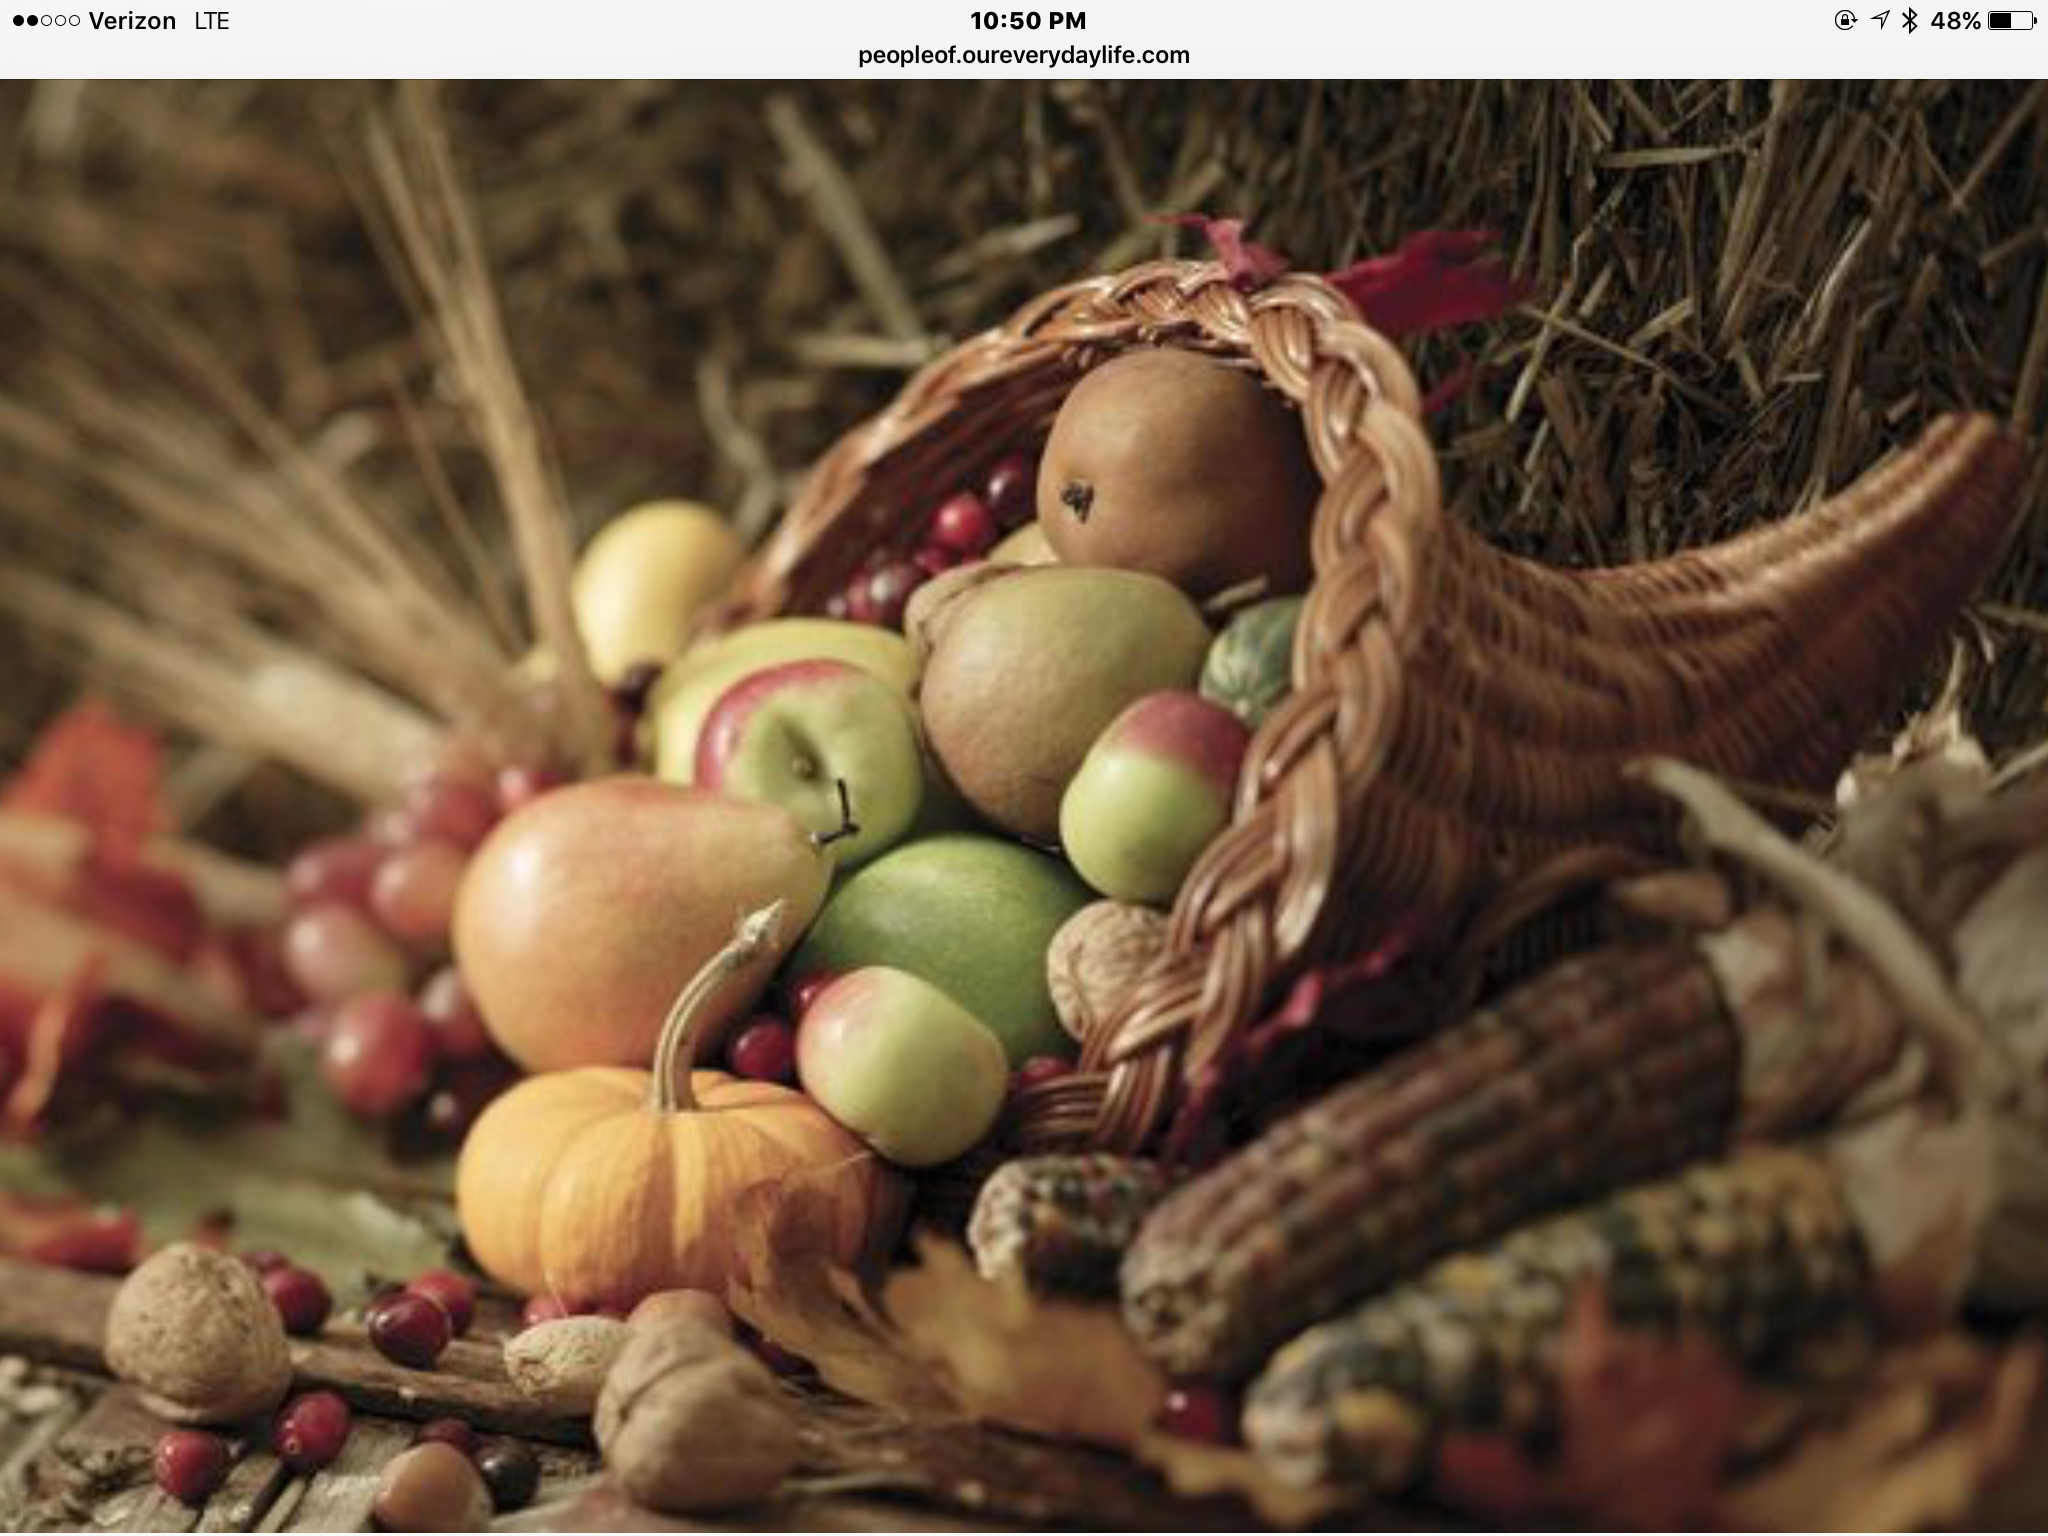 Pin by Susan Darby on Liturgy Thanksgiving Fruit